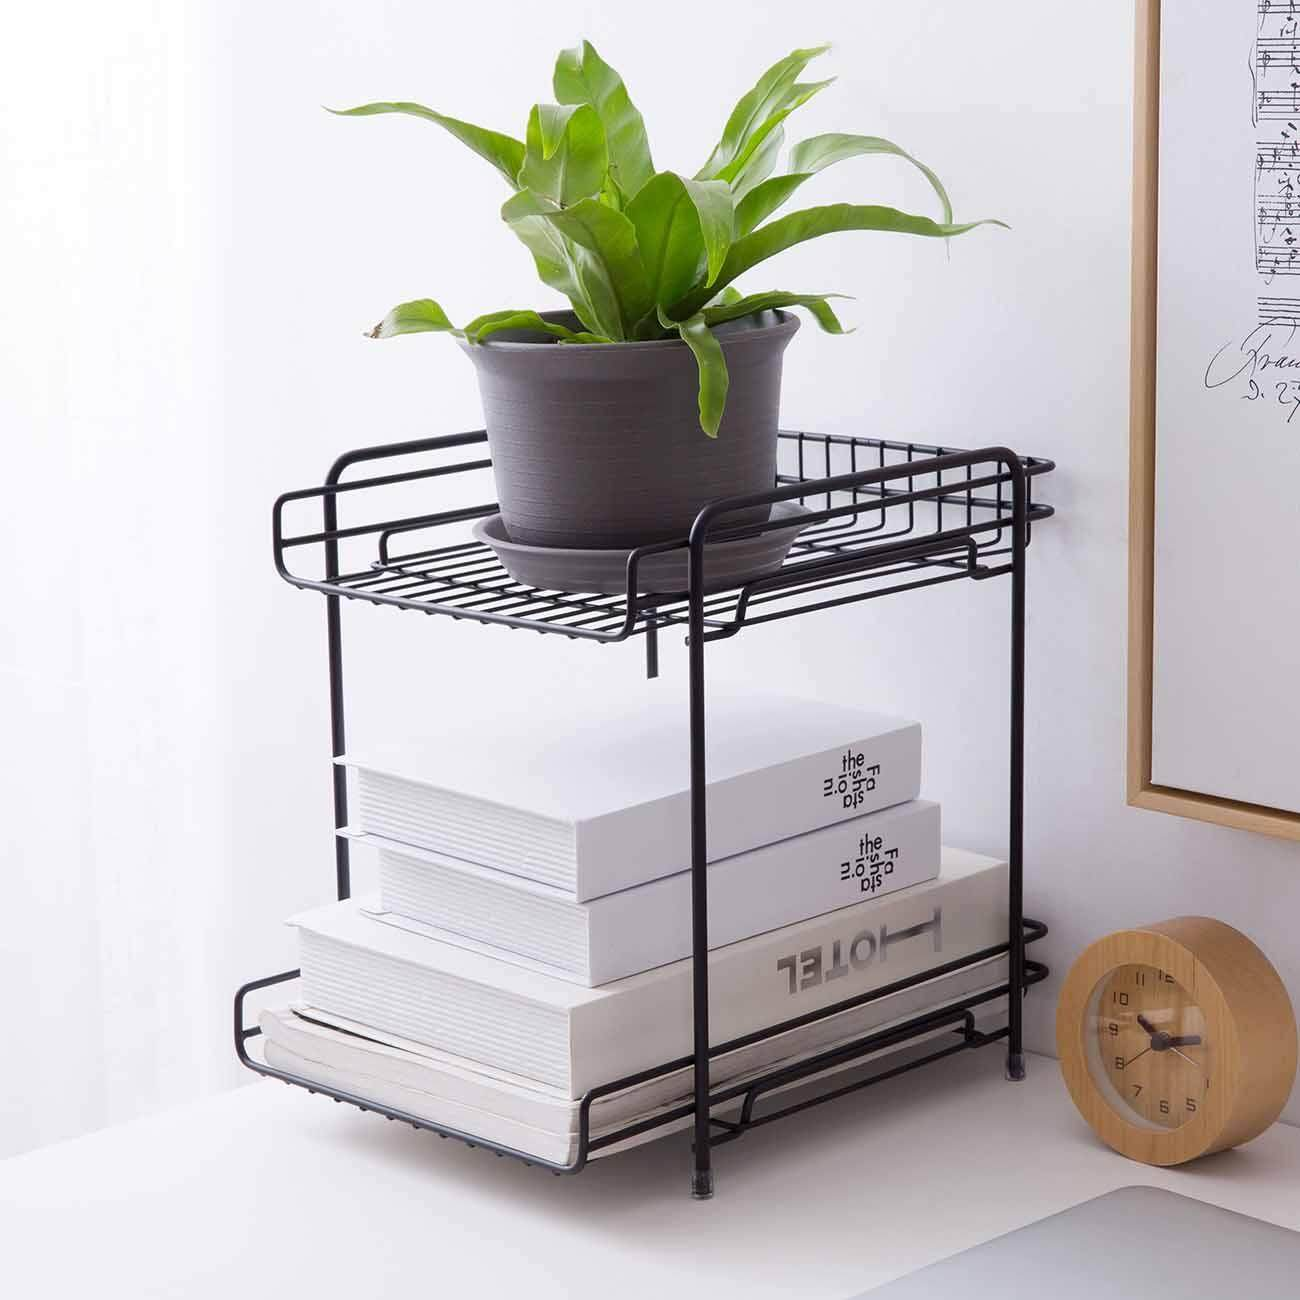 Double Layer Iron Rack Cosmetic Books Shelves Holder Home Office Desk Sundries Organizer